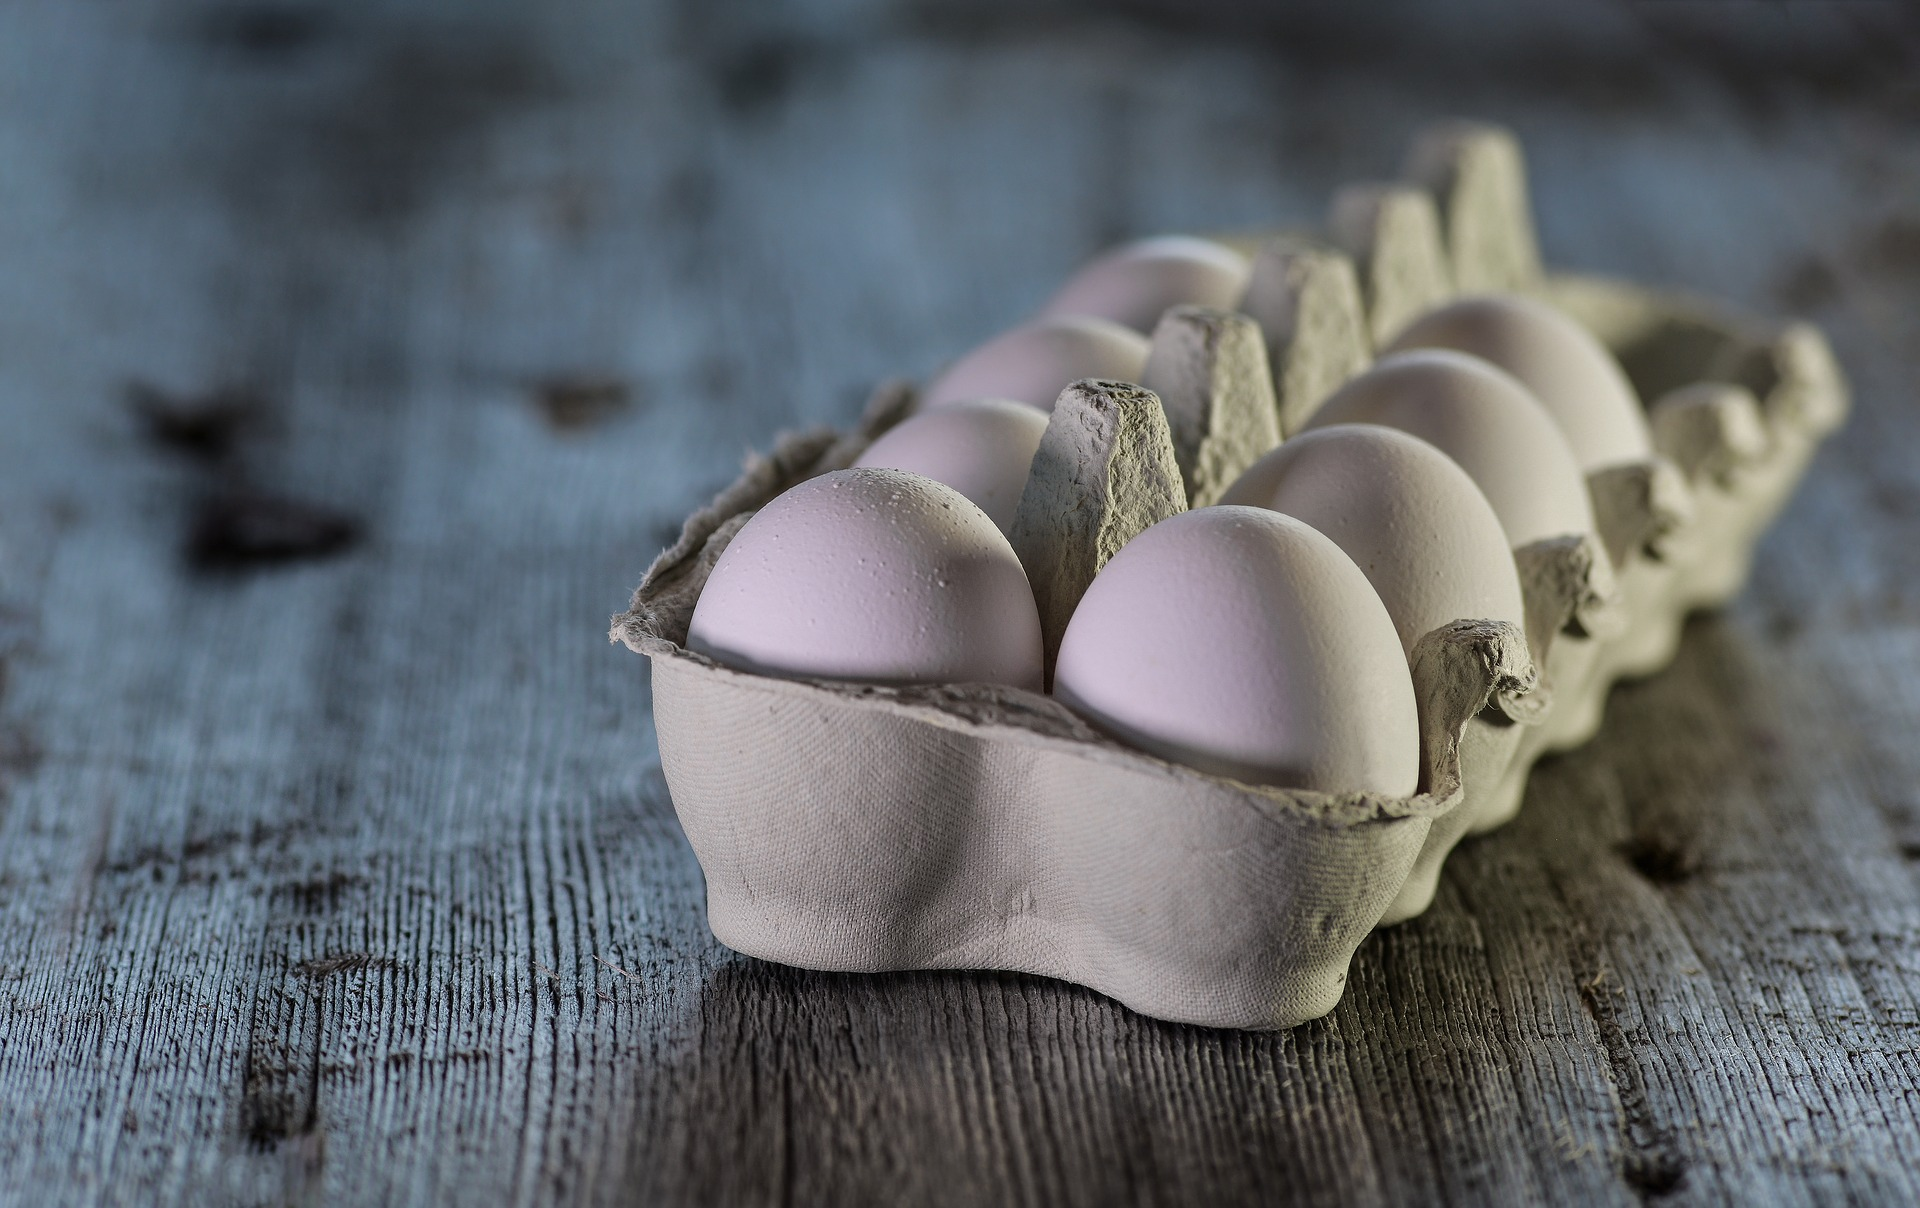 Eggs: Here's Why You Should Eat More of Them